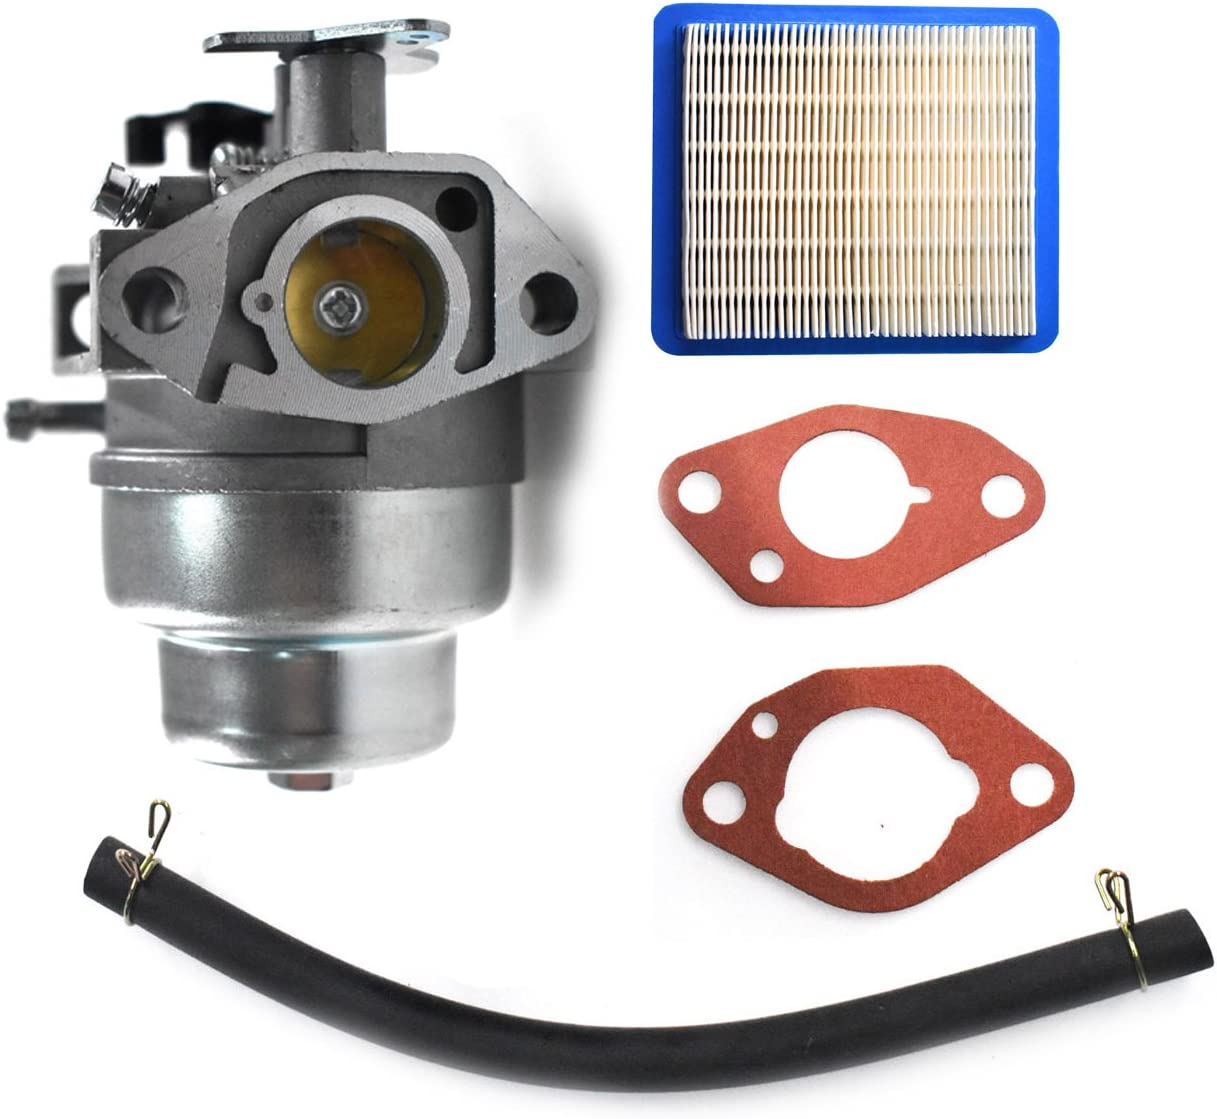 Karbay Carburetor for Honda GCV135 GCV160 GC135 GC160 Engine Carb Gasket # 6212849